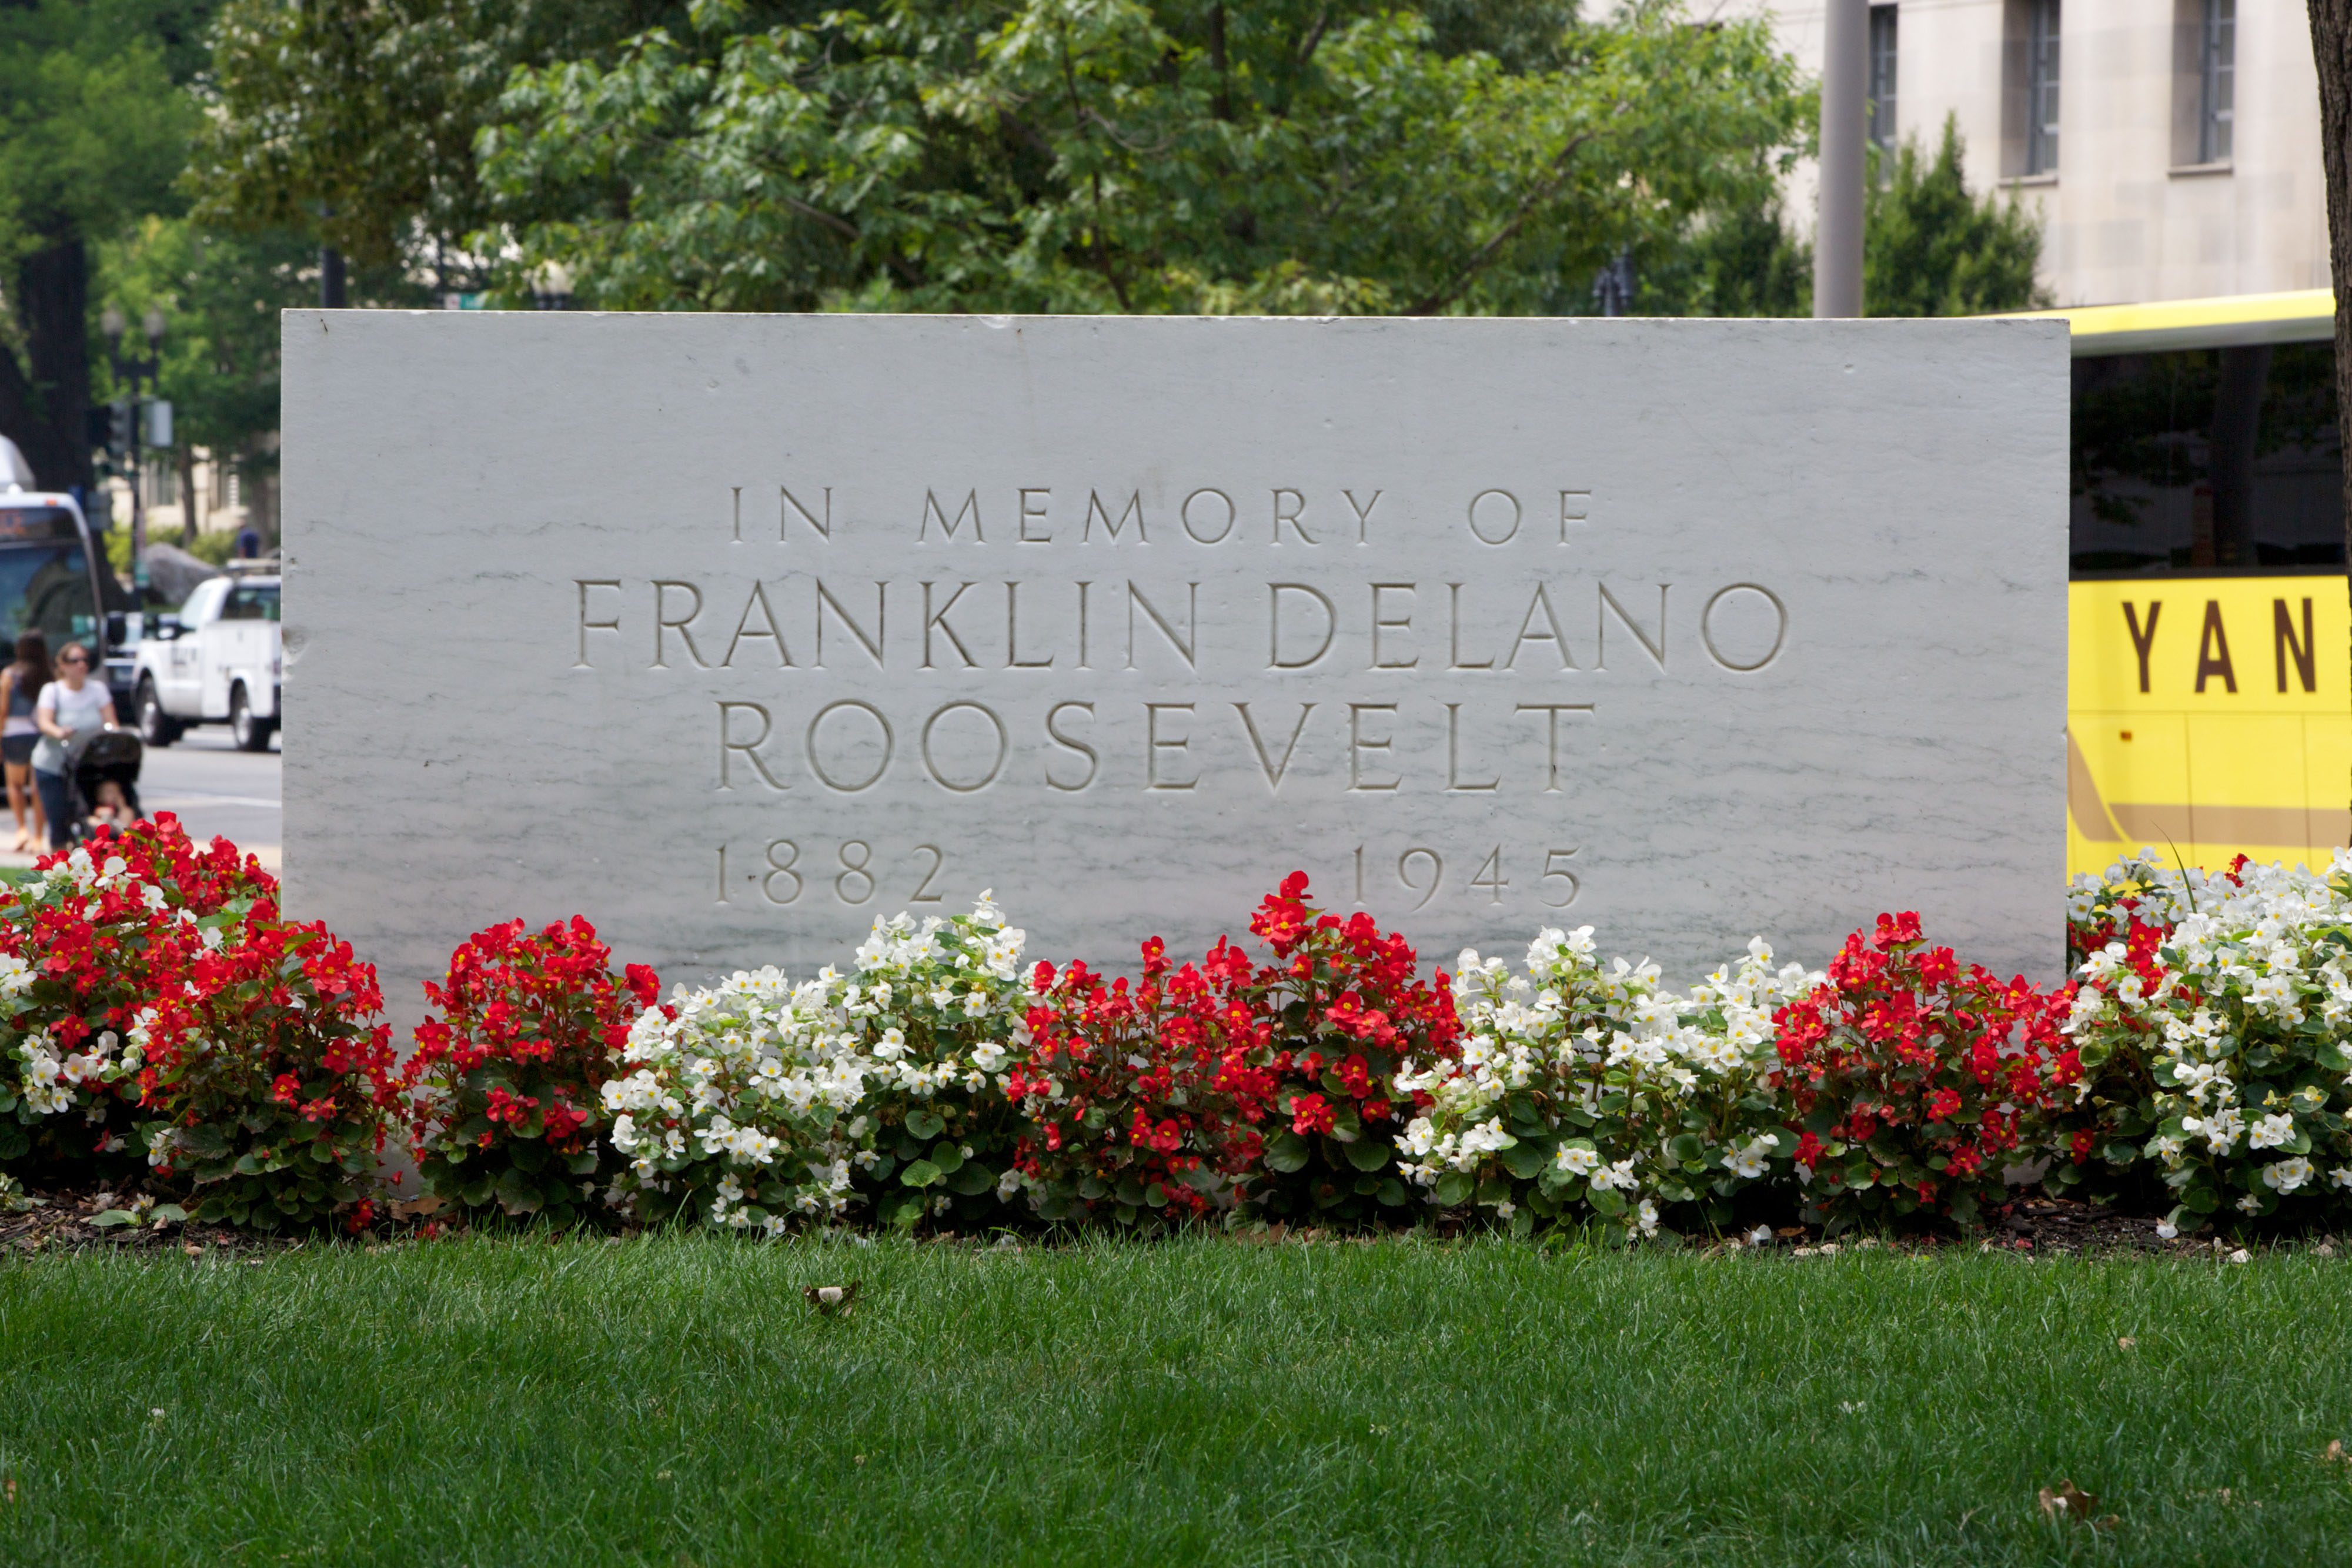 FDR Memorial, August 6, 2014. (Photo by Jeff Reed, National Archives)